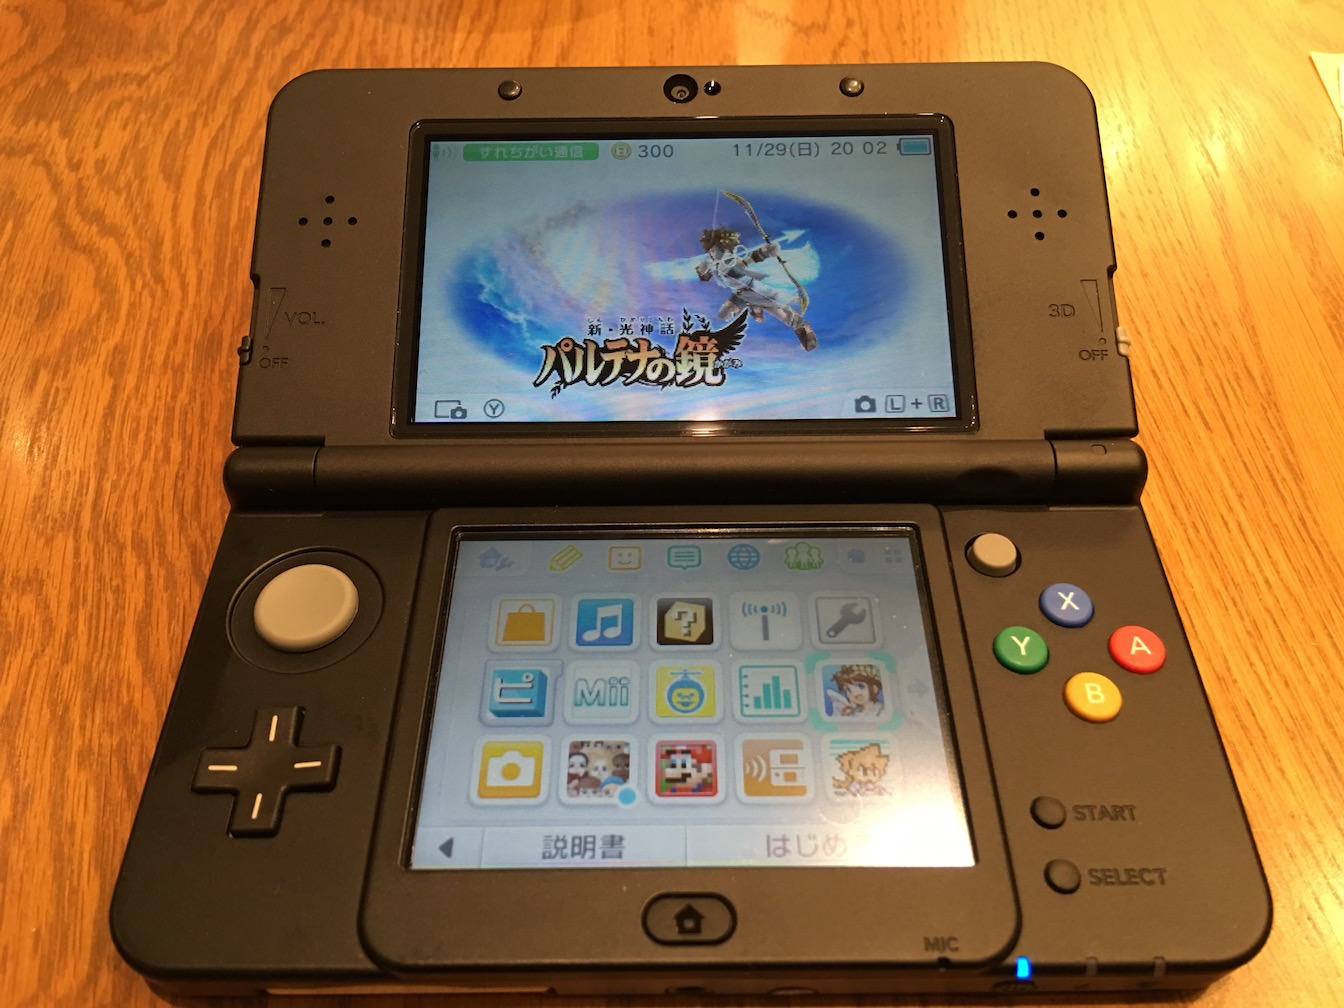 Review of zero pita filter for new nintendo 3ds 15